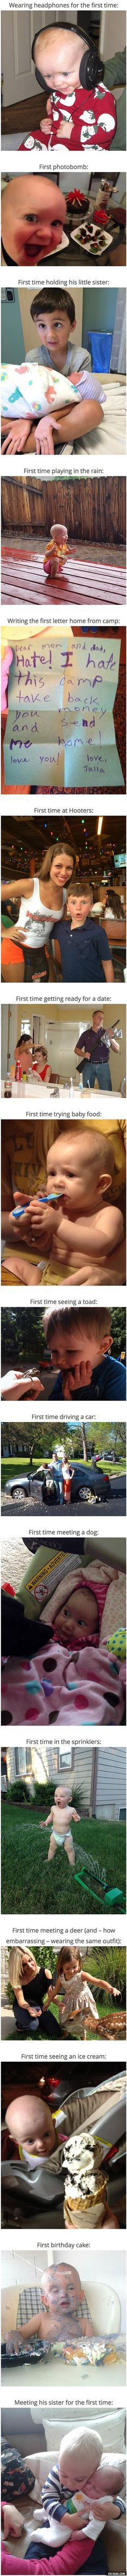 16 Kids Doing Stuff For The First Time http://ibeebz.com